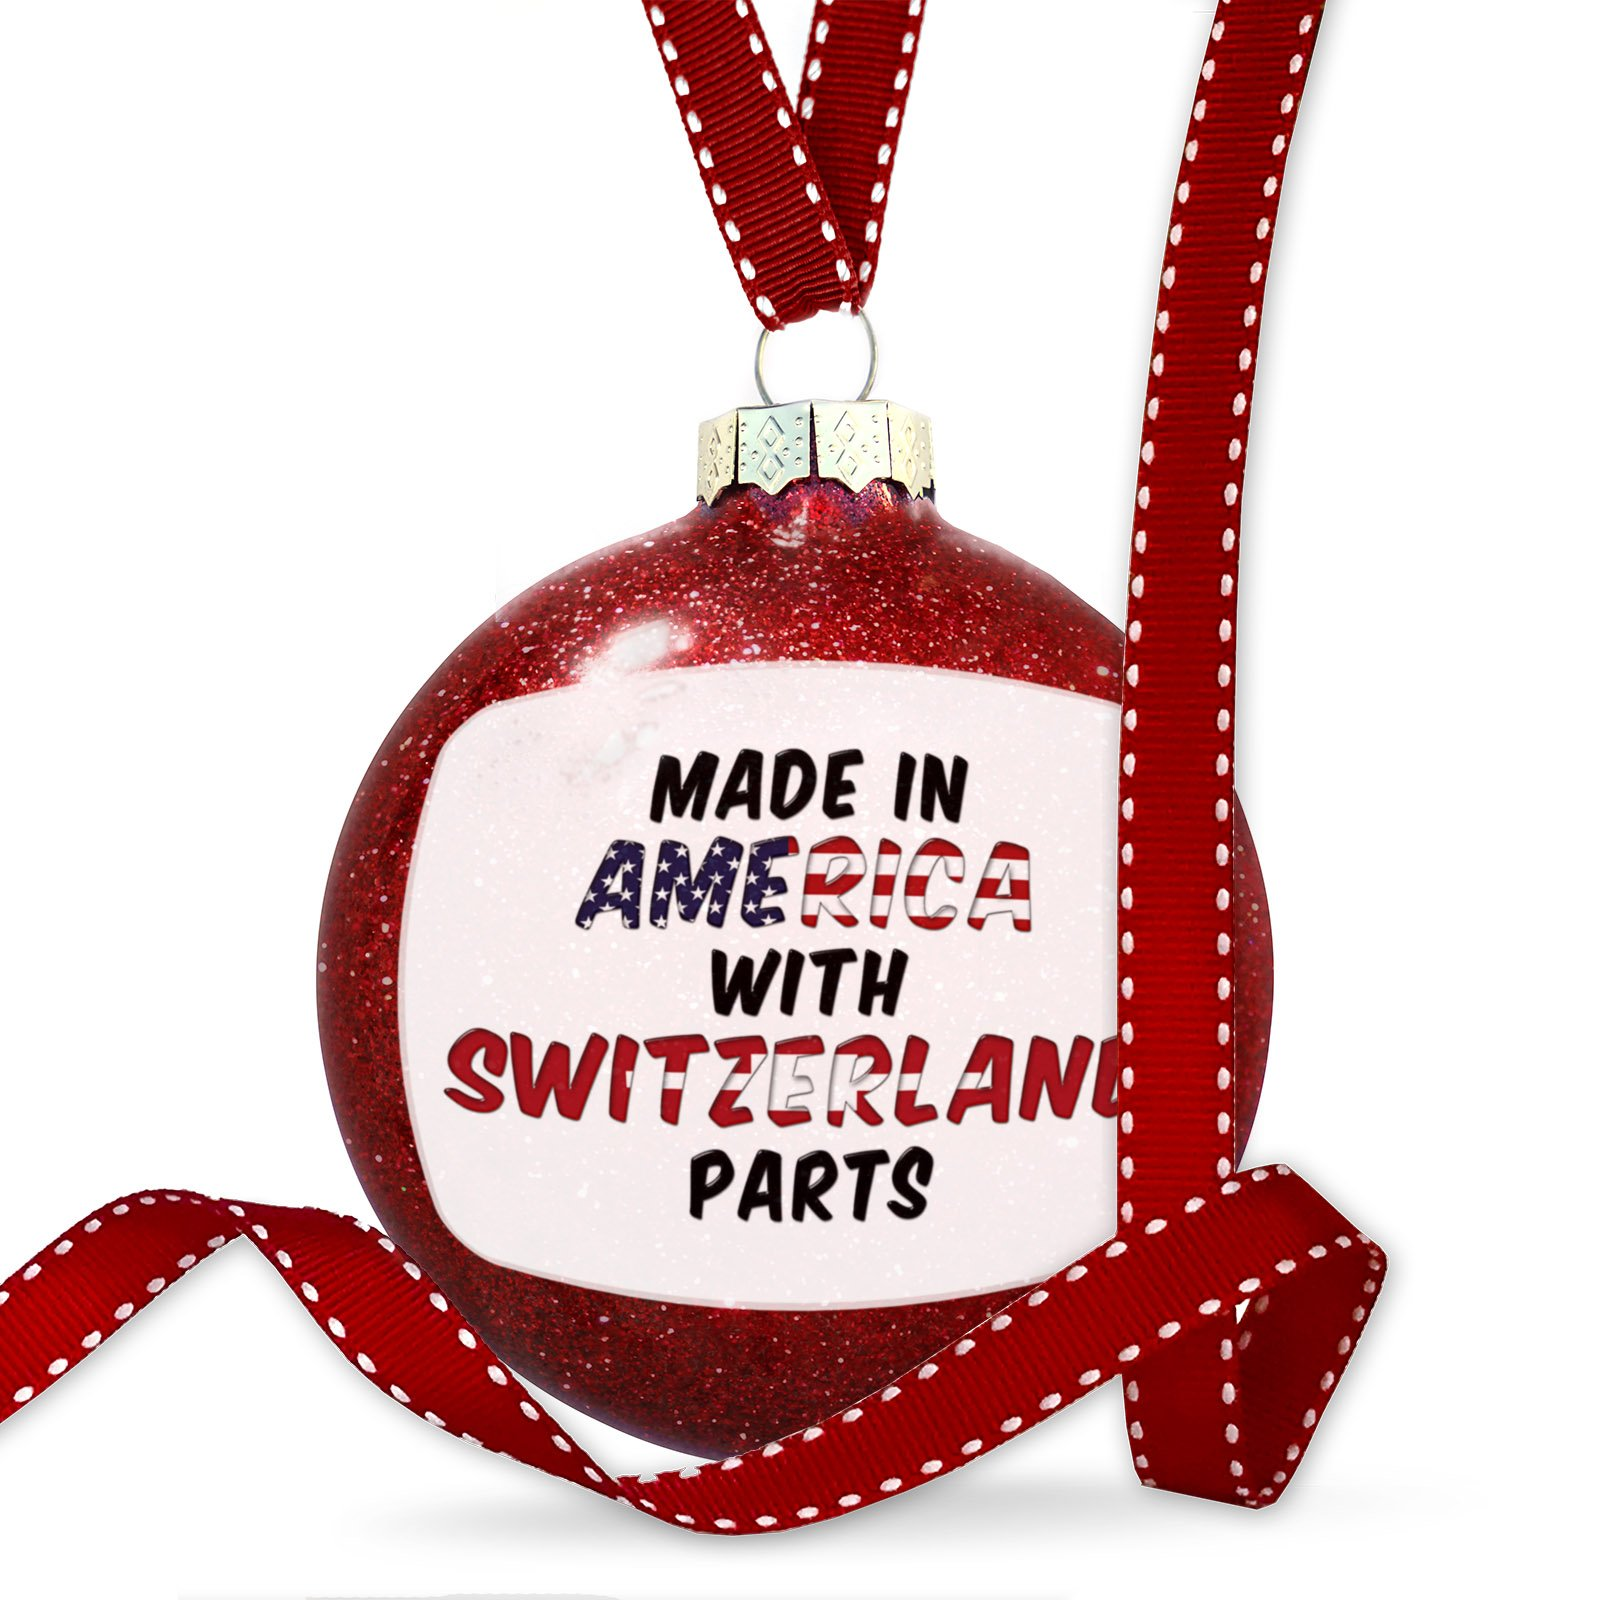 Christmas Decoration Made in America with Parts from Switzerland Ornament